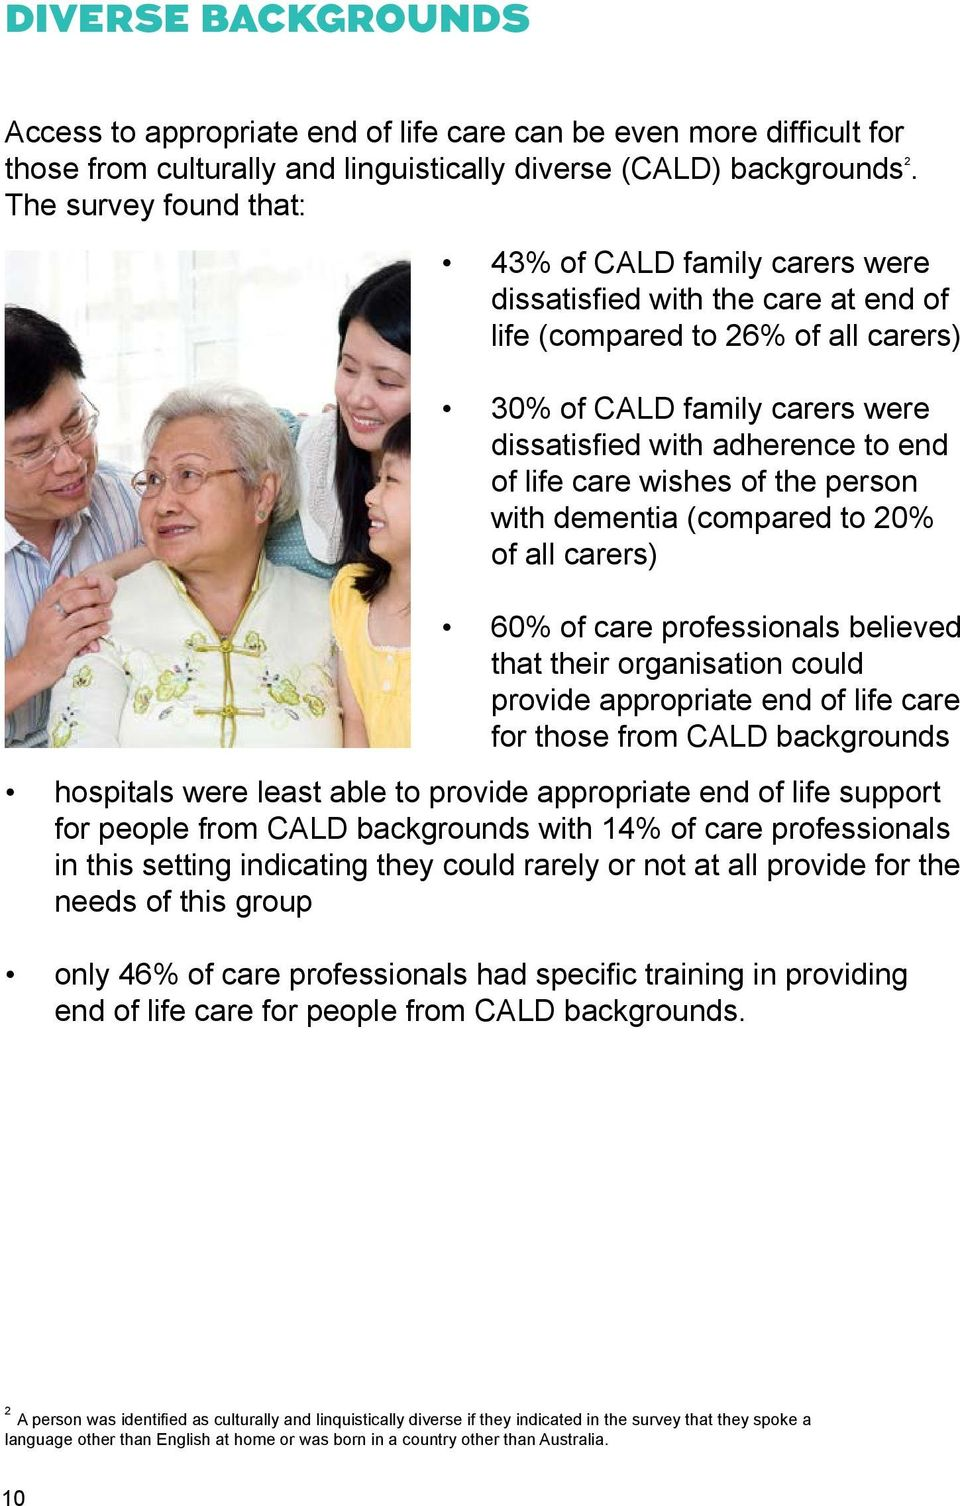 life care wishes of the person with dementia (compared to 20% of all carers) 60% of care professionals believed that their organisation could provide appropriate end of life care for those from CALD